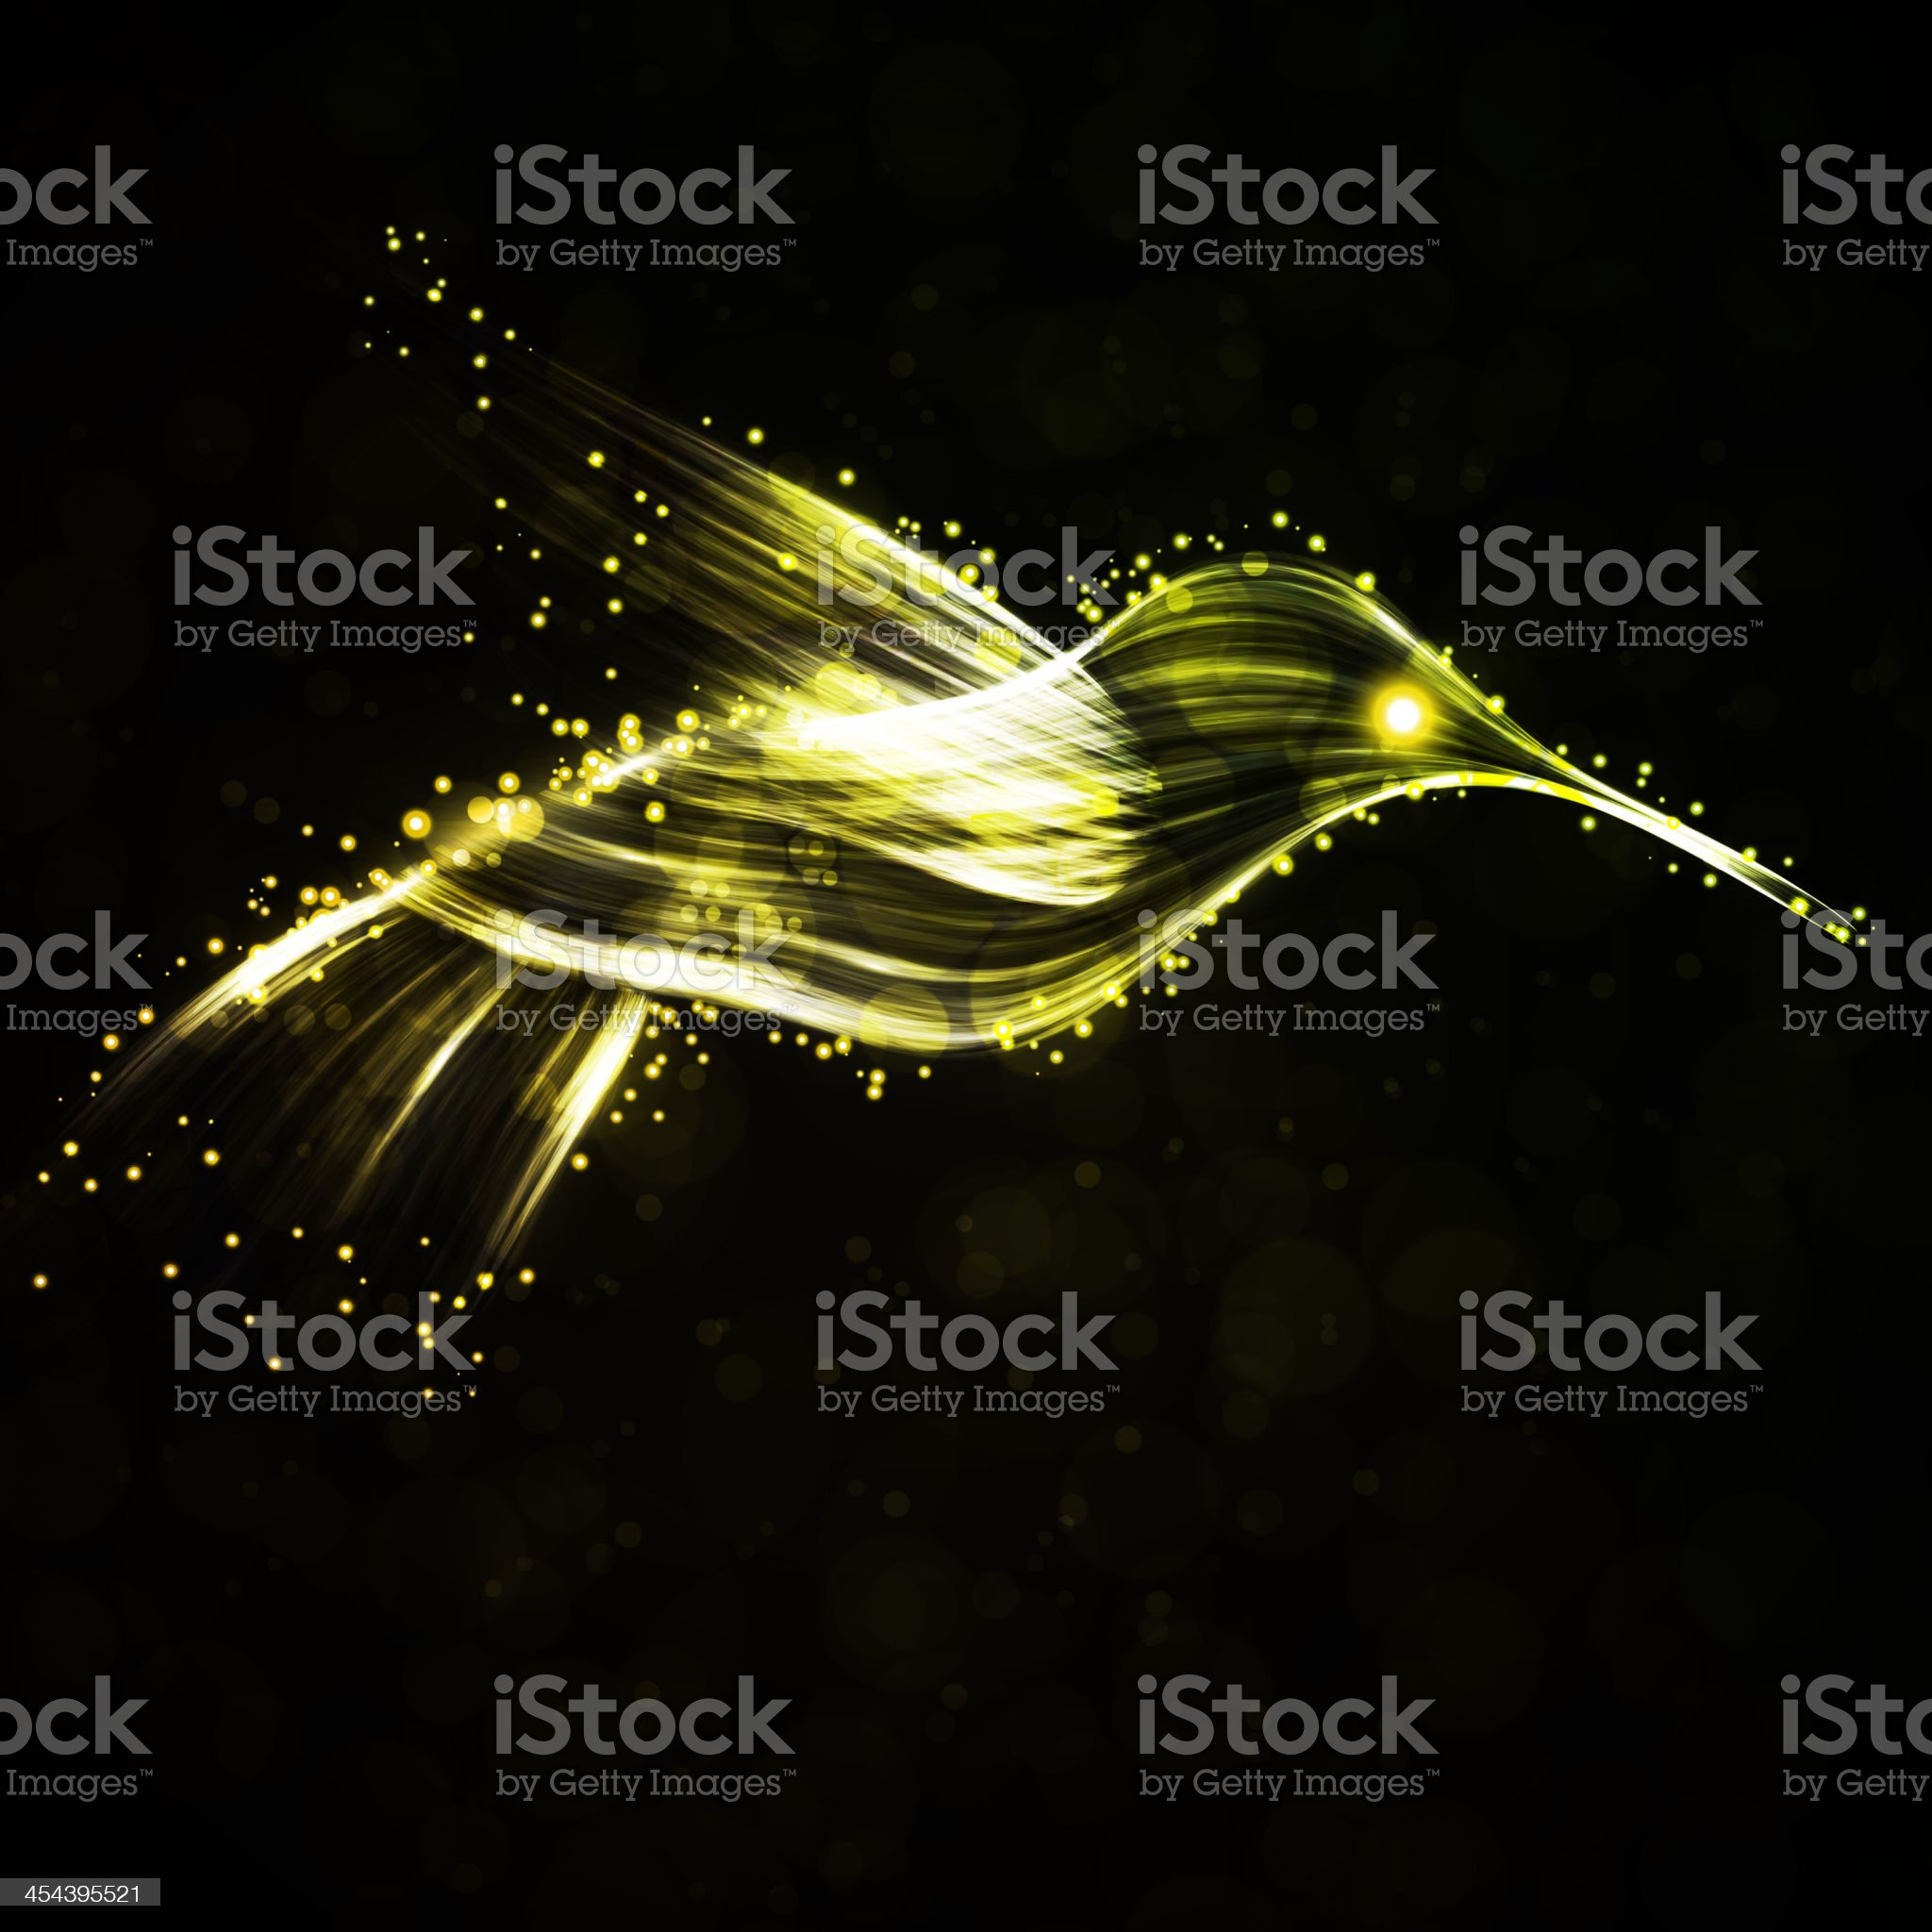 Neon hummingbird royalty-free stock vector art